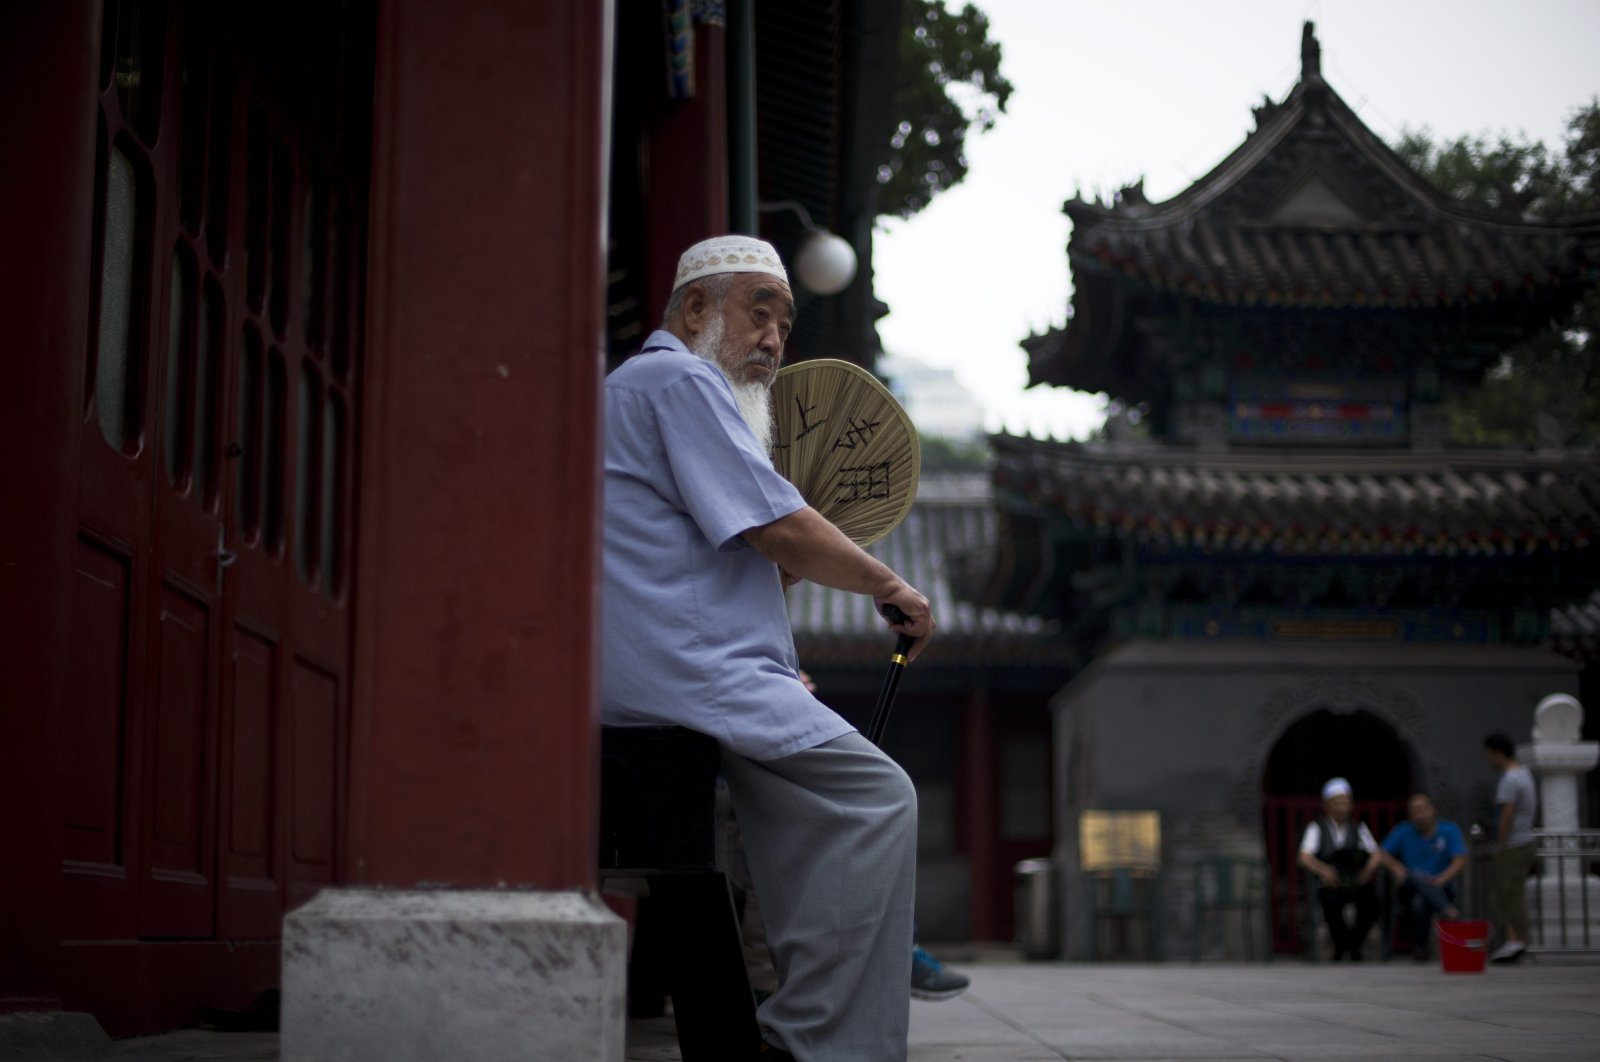 A Chinese Muslim man fans himself as he waits for the time to break his fast during the Muslim holy month of Ramadan at the Niujie mosque, the oldest and largest mosque in Beijing, China, July 2, 2014. (AP Photo)